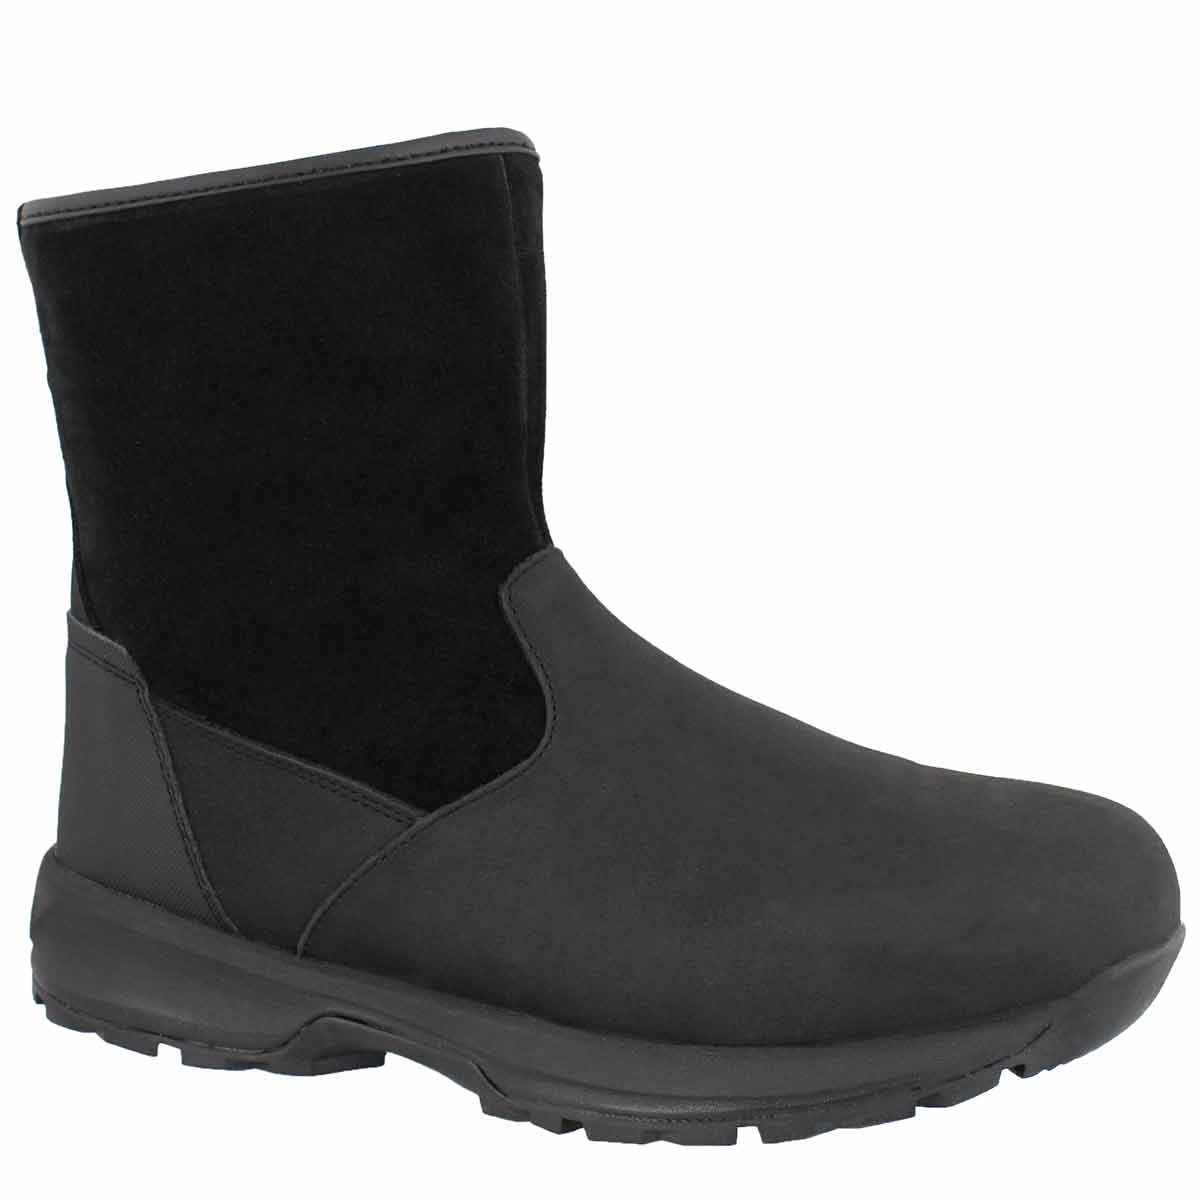 Mns Barchan black zip up wtpf ankle boot